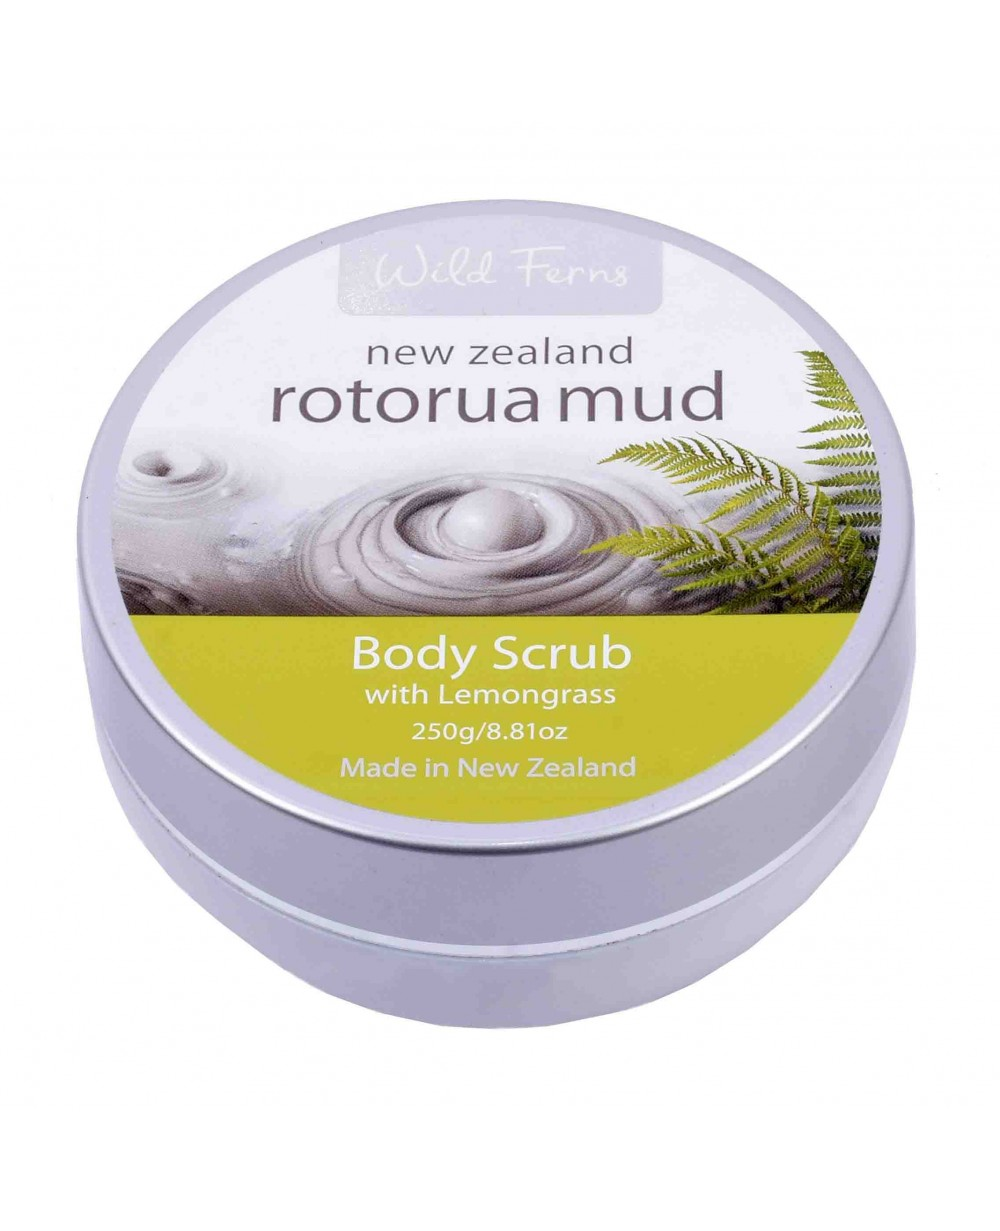 What Is Body Scrub?